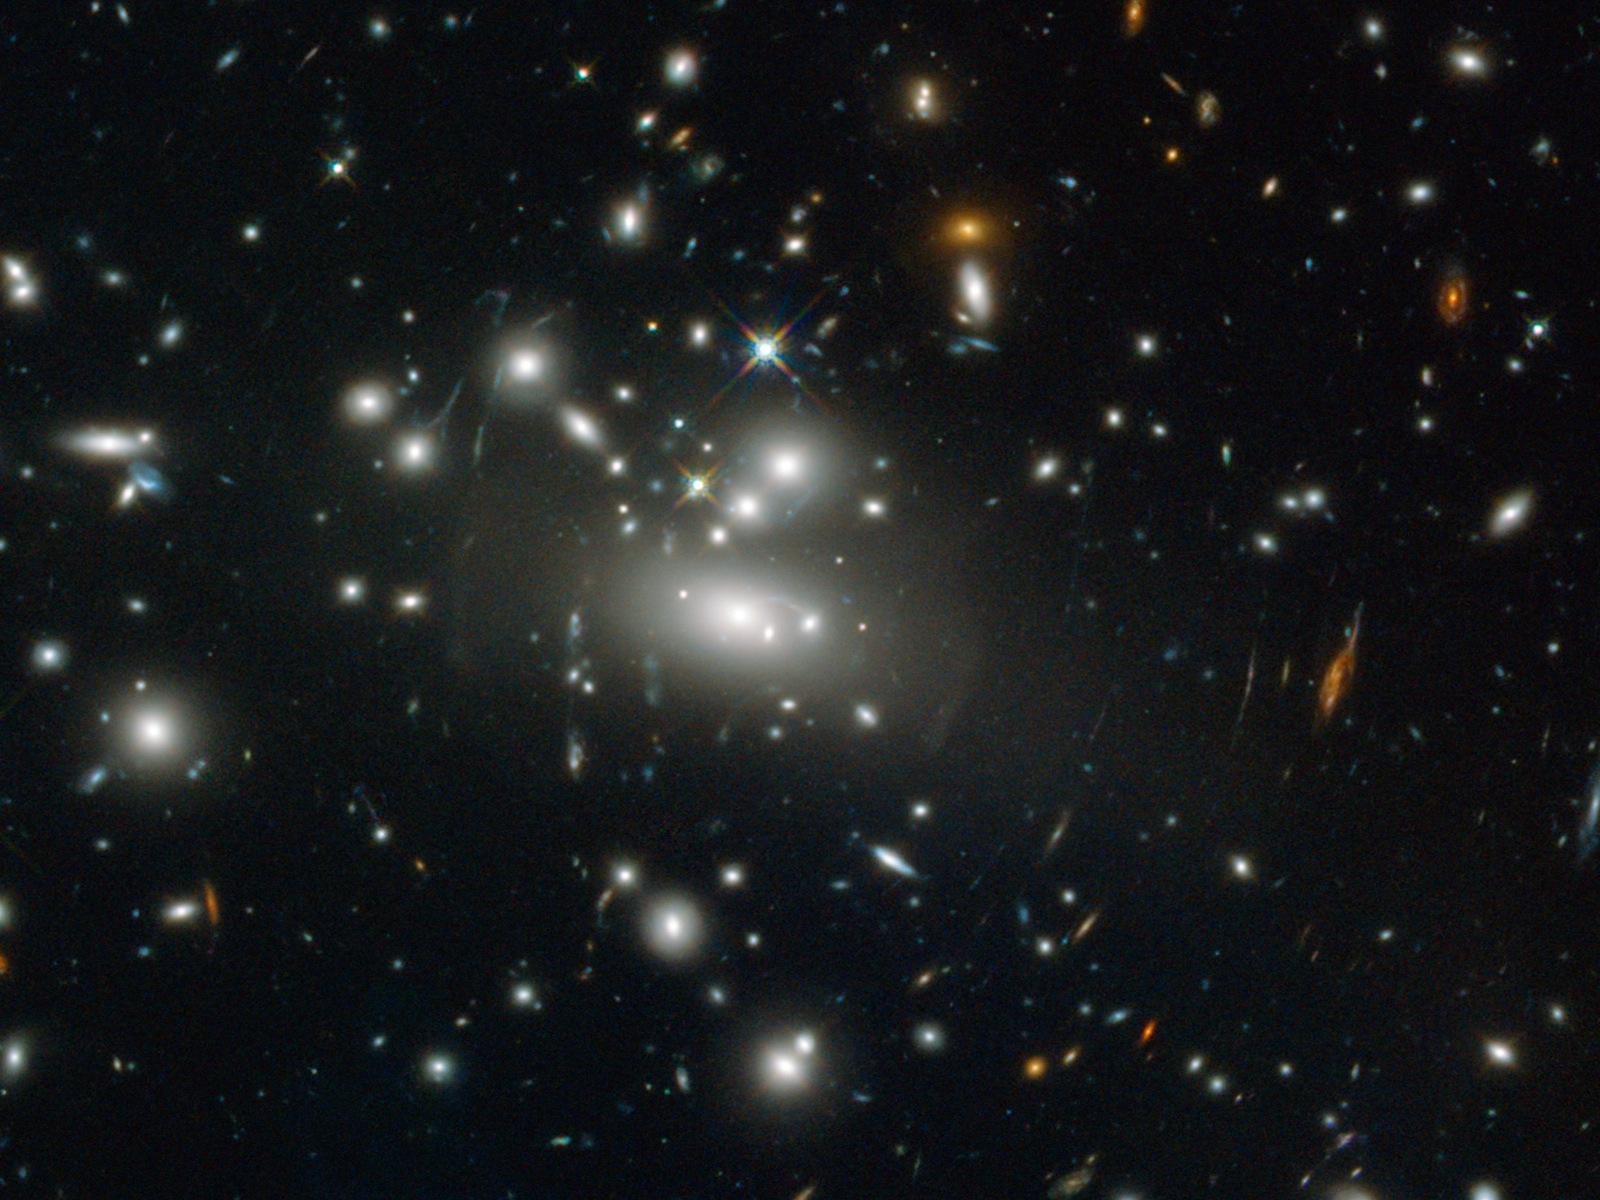 Galaxy Cluster Abell S1077 space wallpaper